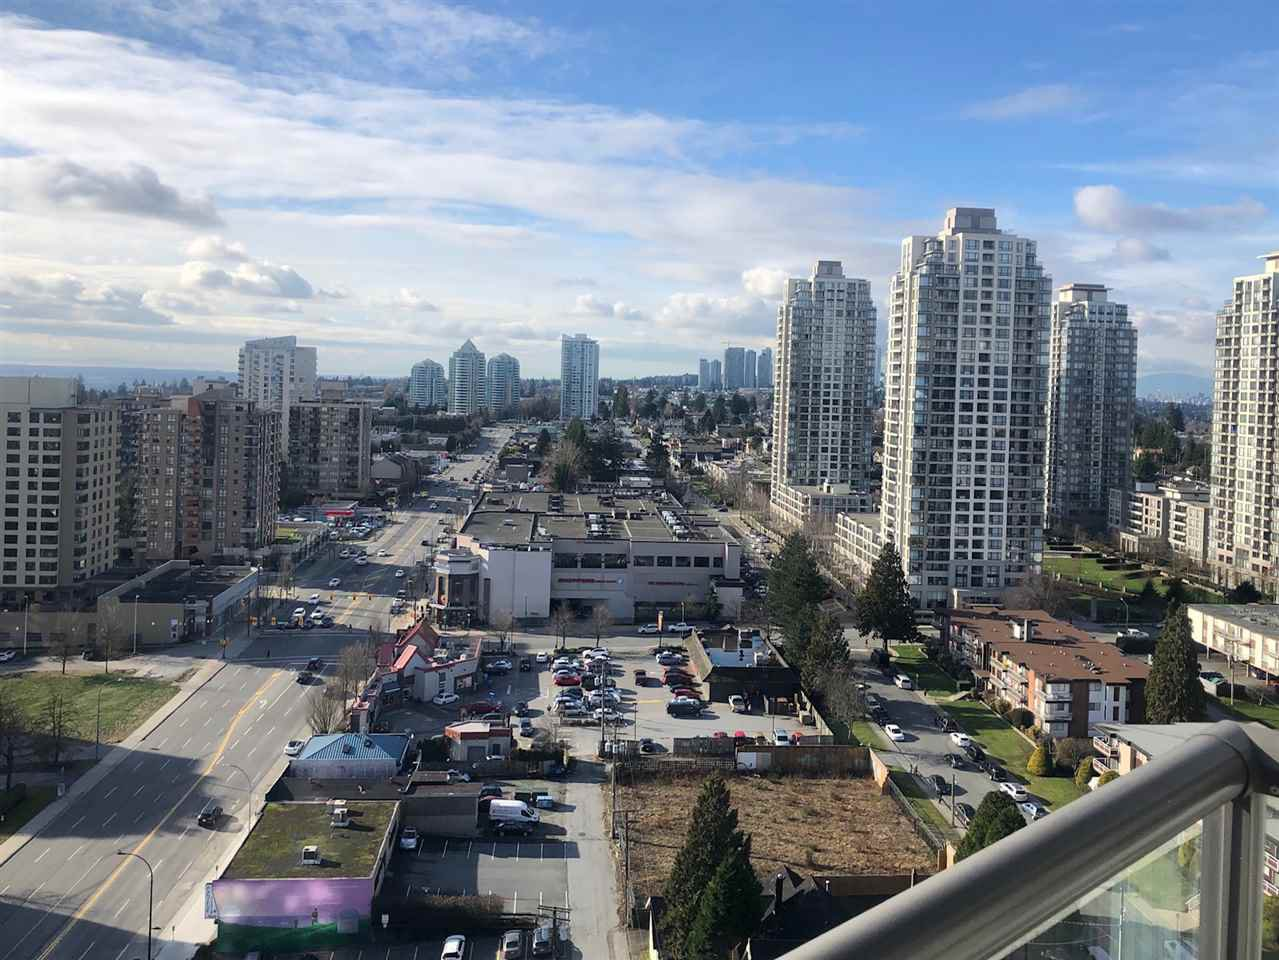 """Photo 3: Photos: 2206 7328 ARCOLA Street in Burnaby: Highgate Condo for sale in """"ESPRIT SOUTH"""" (Burnaby South)  : MLS®# R2435579"""